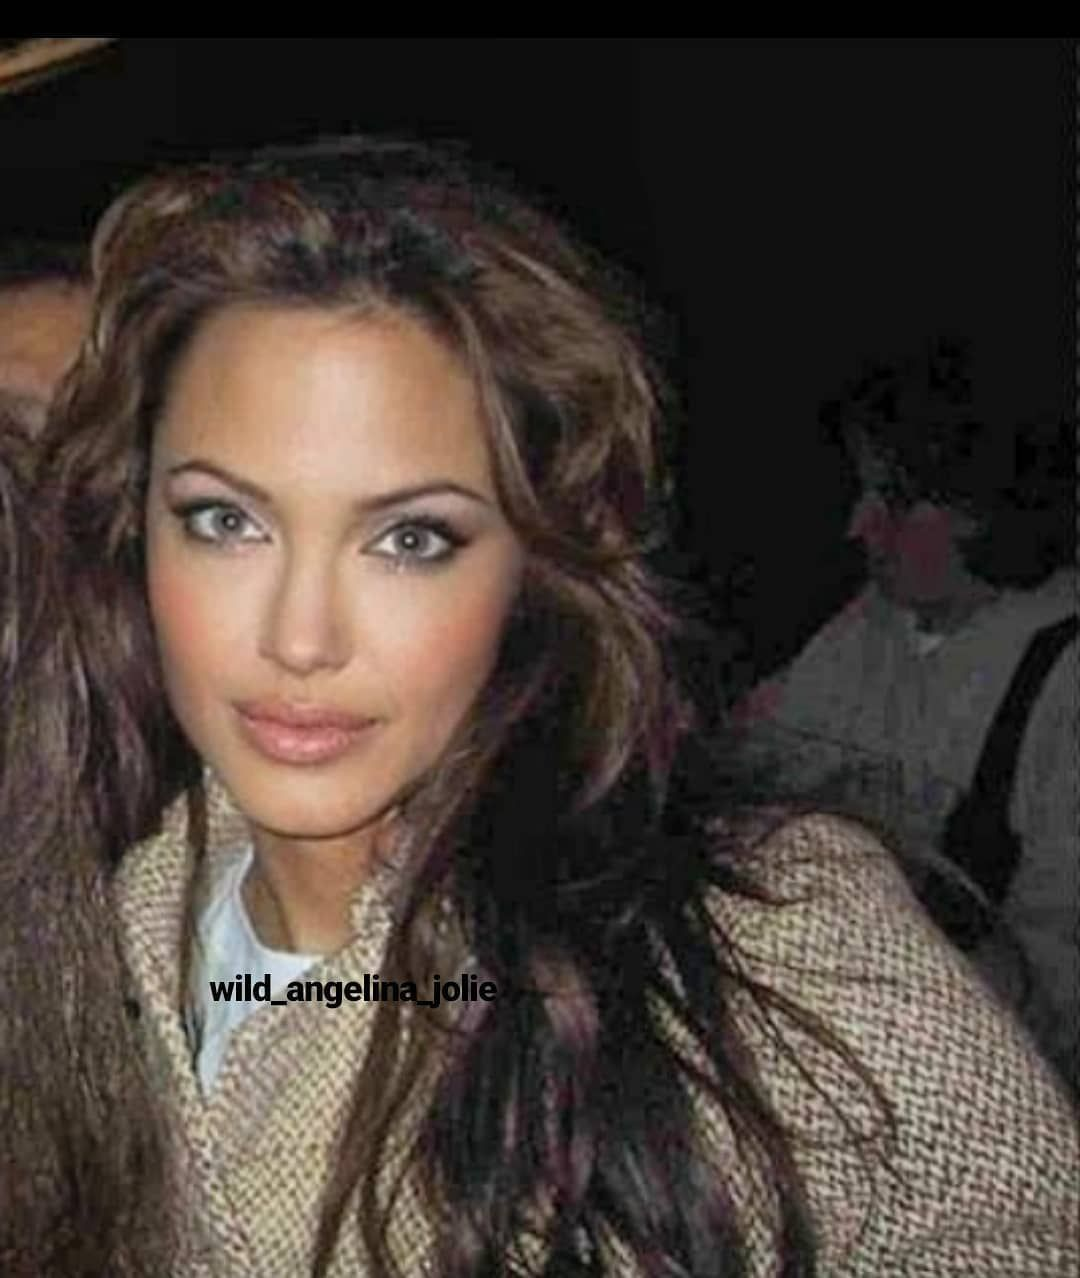 angelina jolie 90s #90s Angelina Jolie on Instagram: #angelinajolie - This image may contain: 1 person - #angelina #AngelinaJolie #angelinajolie #BeautifulCelebrities # #jolie #KateMiddleton